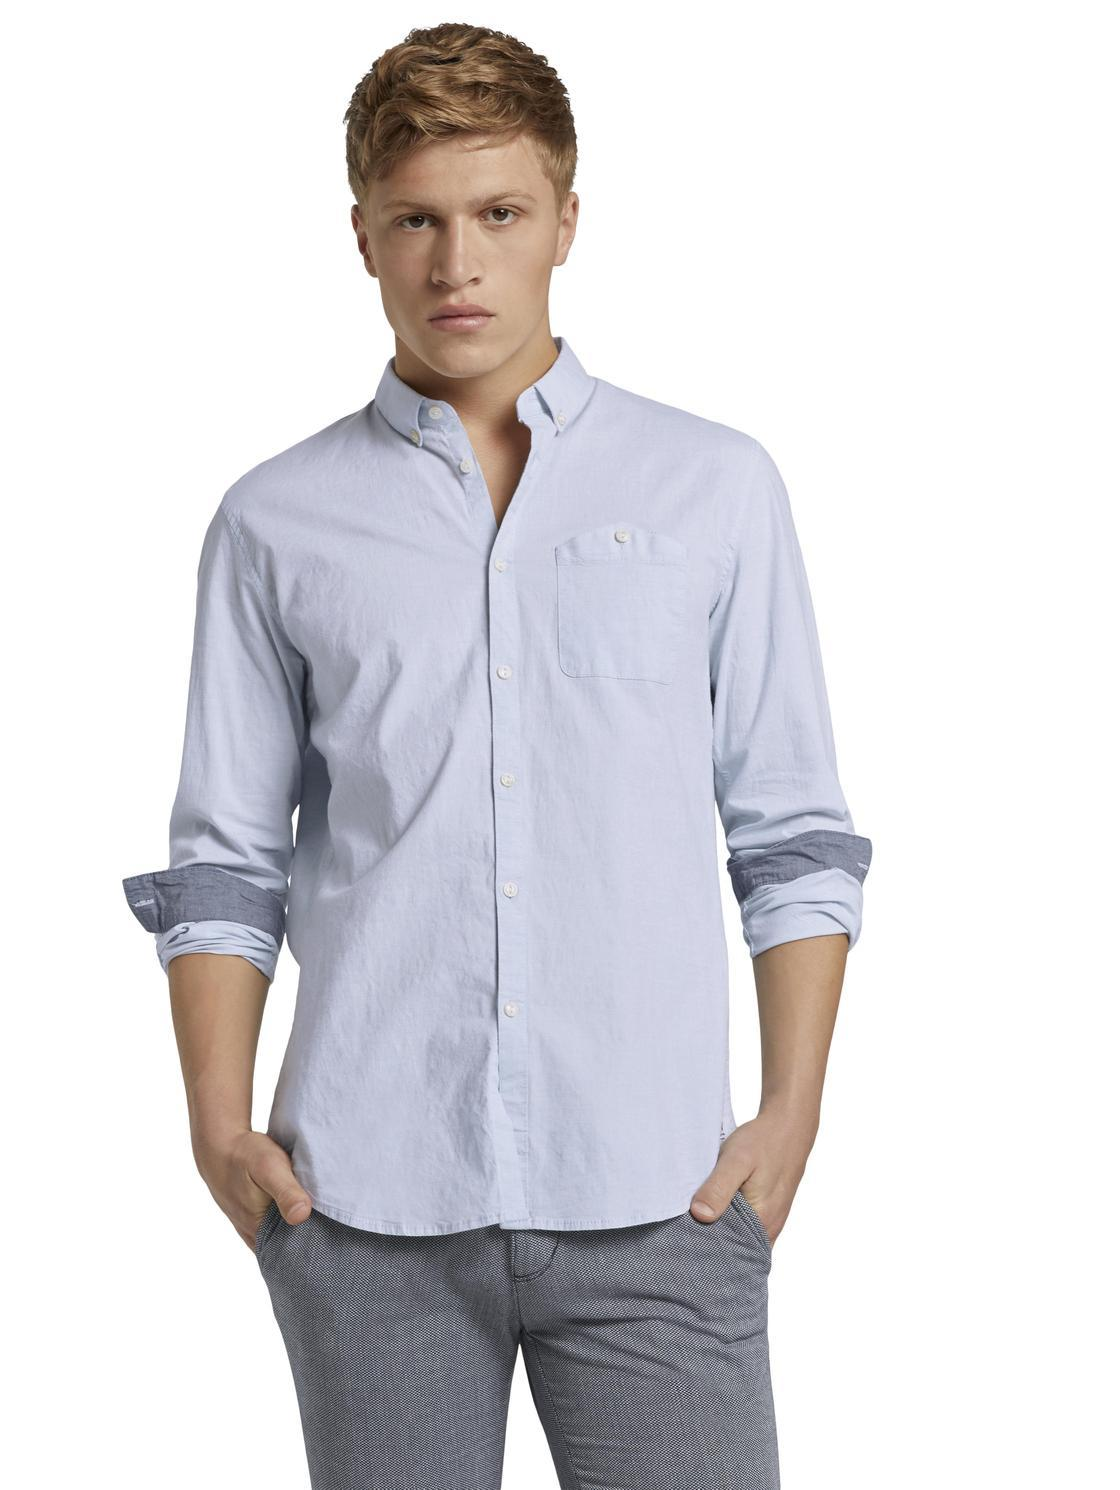 Tom Tailor 1020189 men's shirt blue